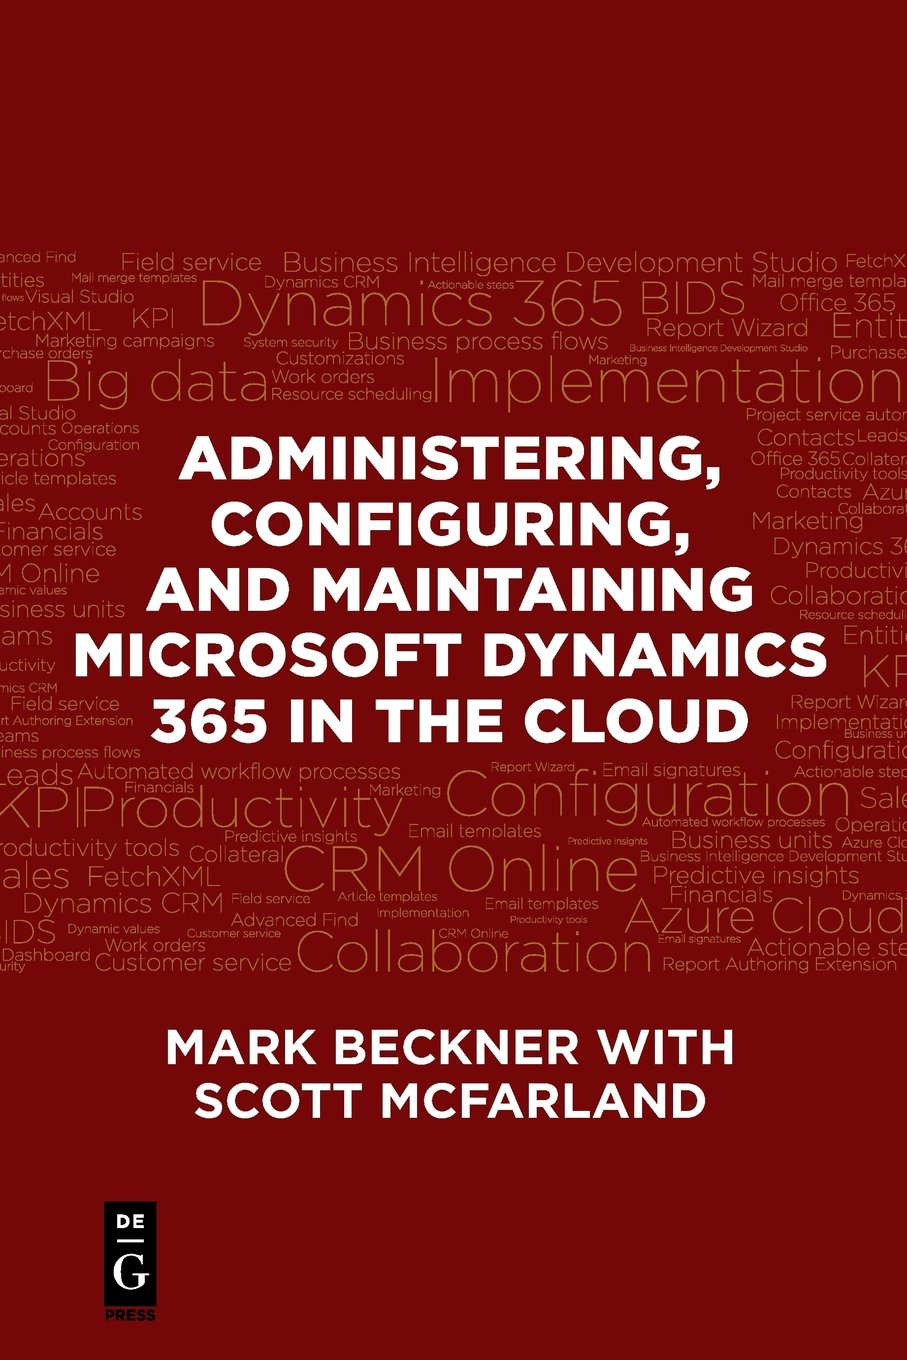 Administering, Configuring, and Maintaining Microsoft Dynamics 365